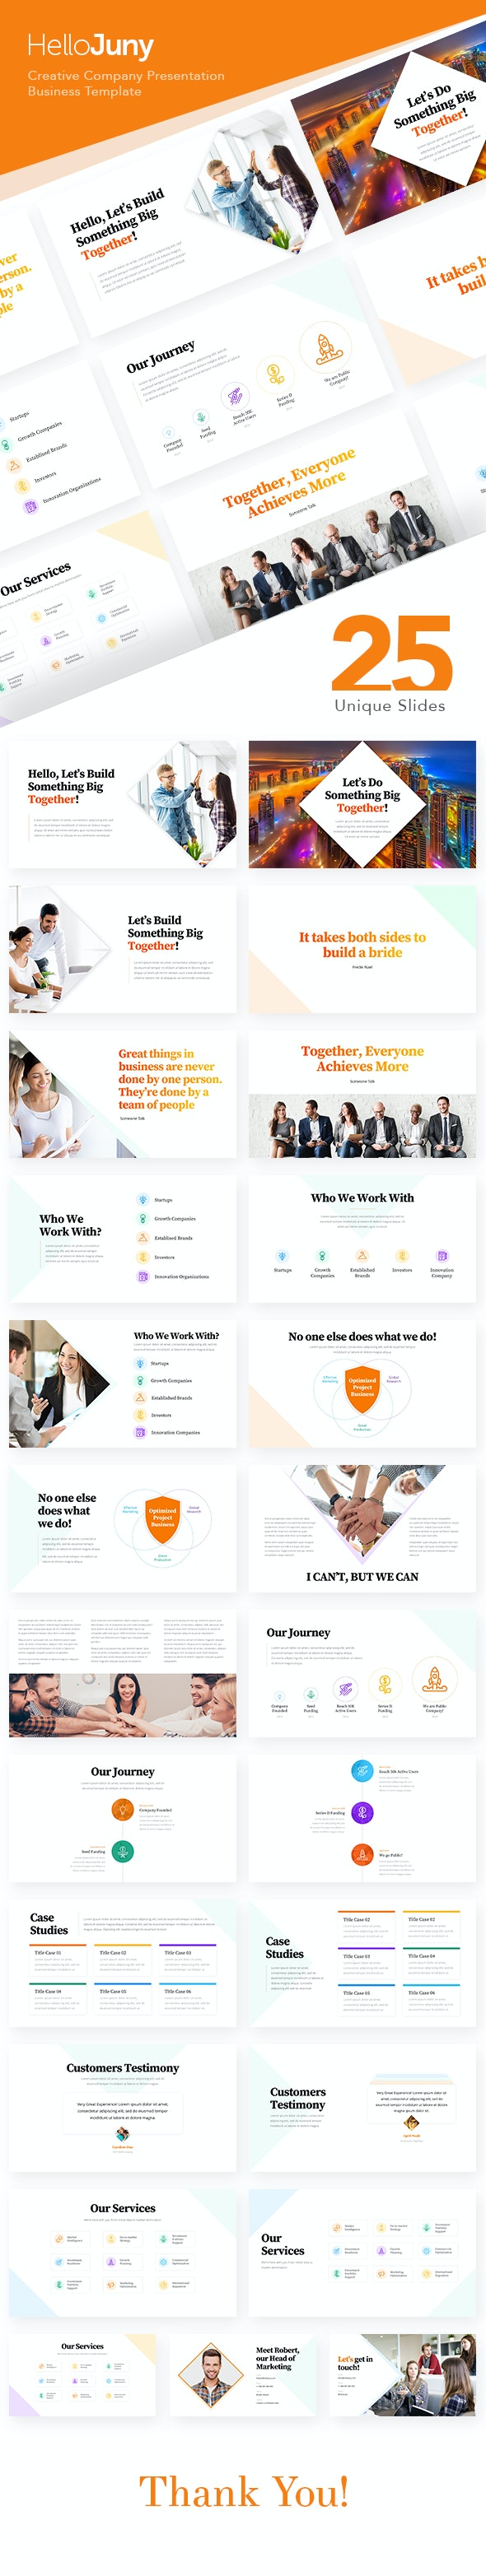 HelloJuny - Creative Company Business PowerPoint Template - PowerPoint Templates Presentation Templates